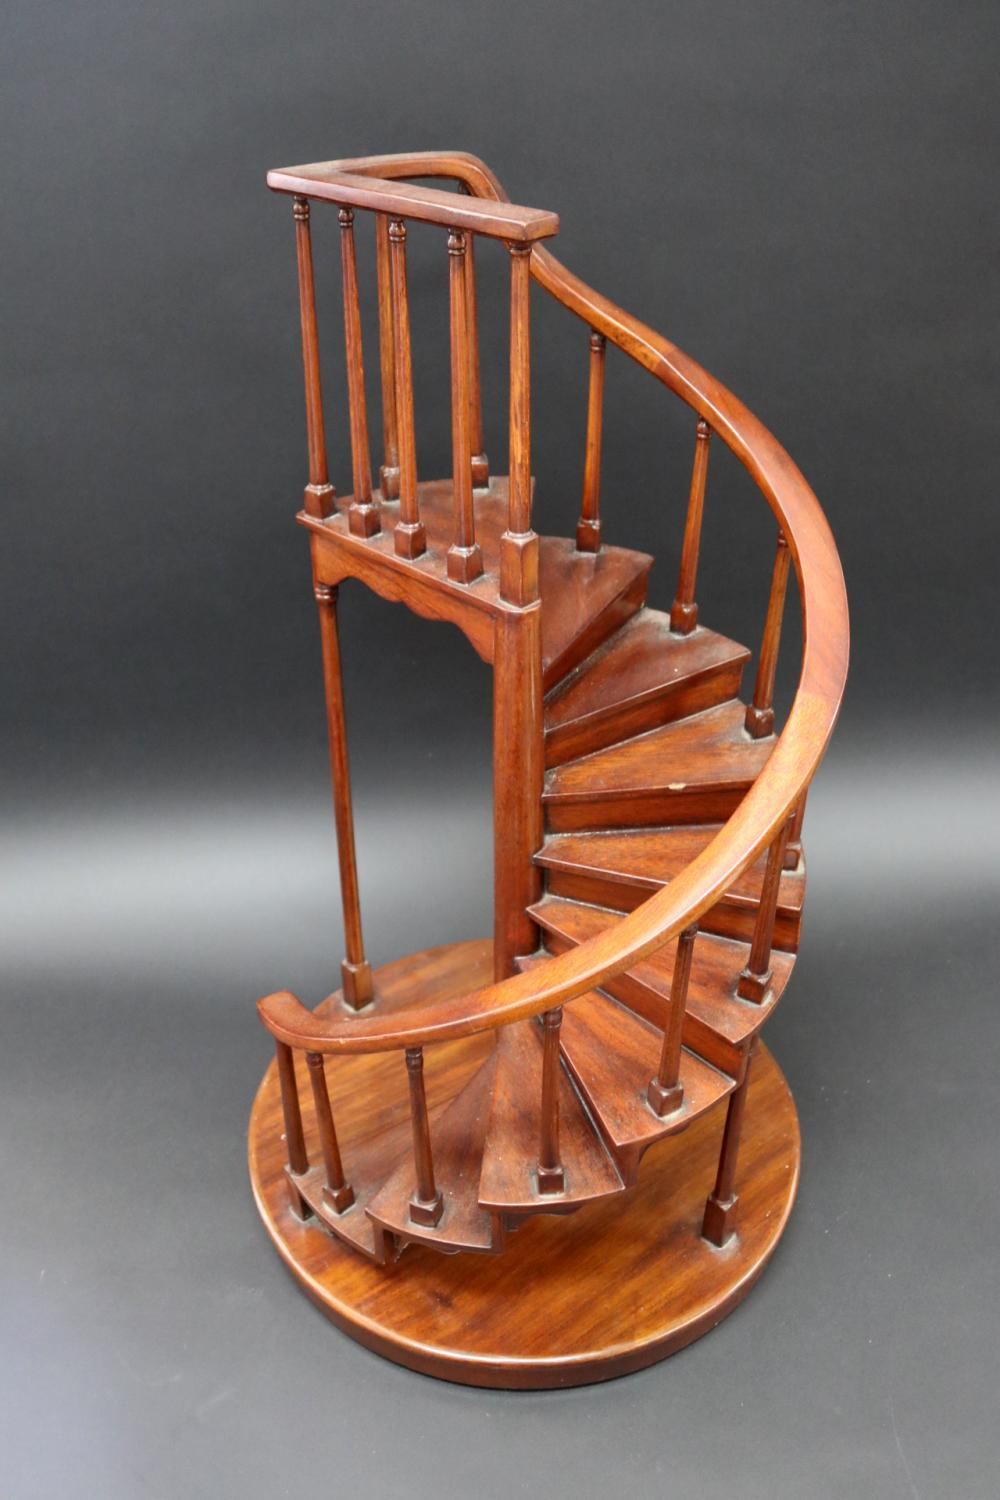 Mahogany wooden scale spiral staircase model, approx 60cm